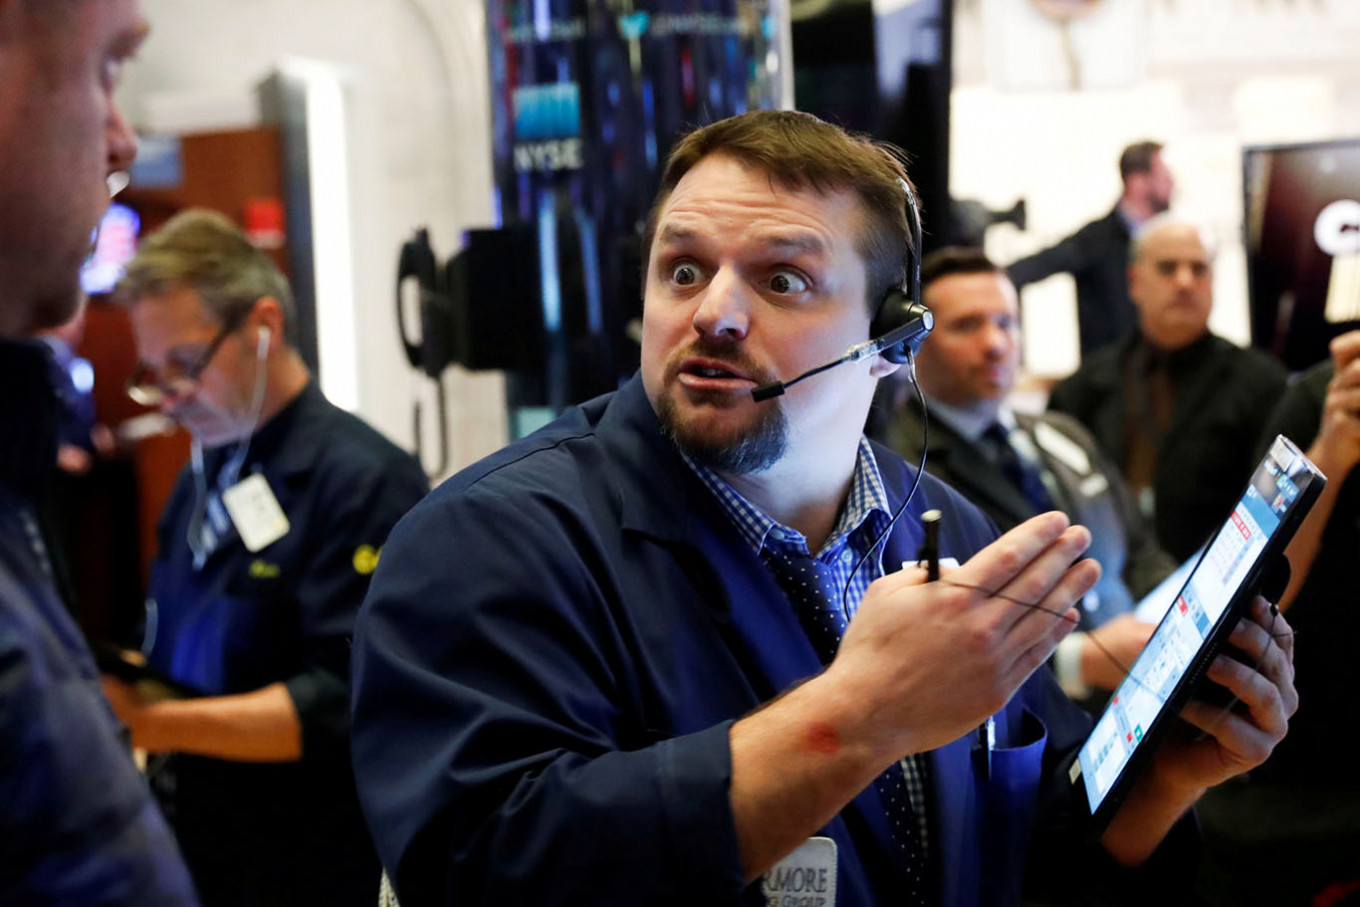 U.S. stocks end mixed amid anticipation of stimulus package